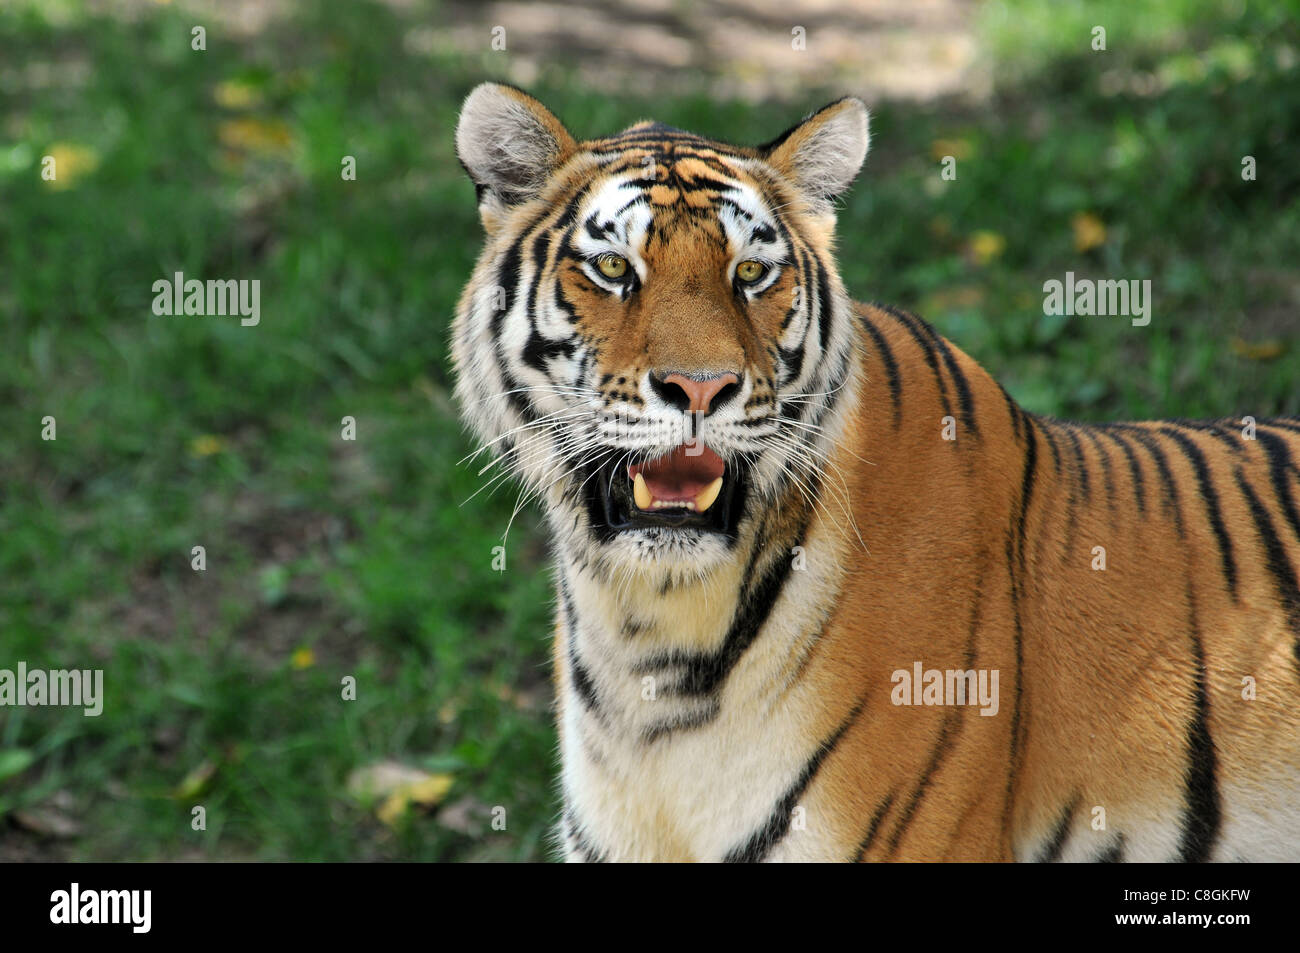 portrait of tiger with background out of focus stock photo: 39704557